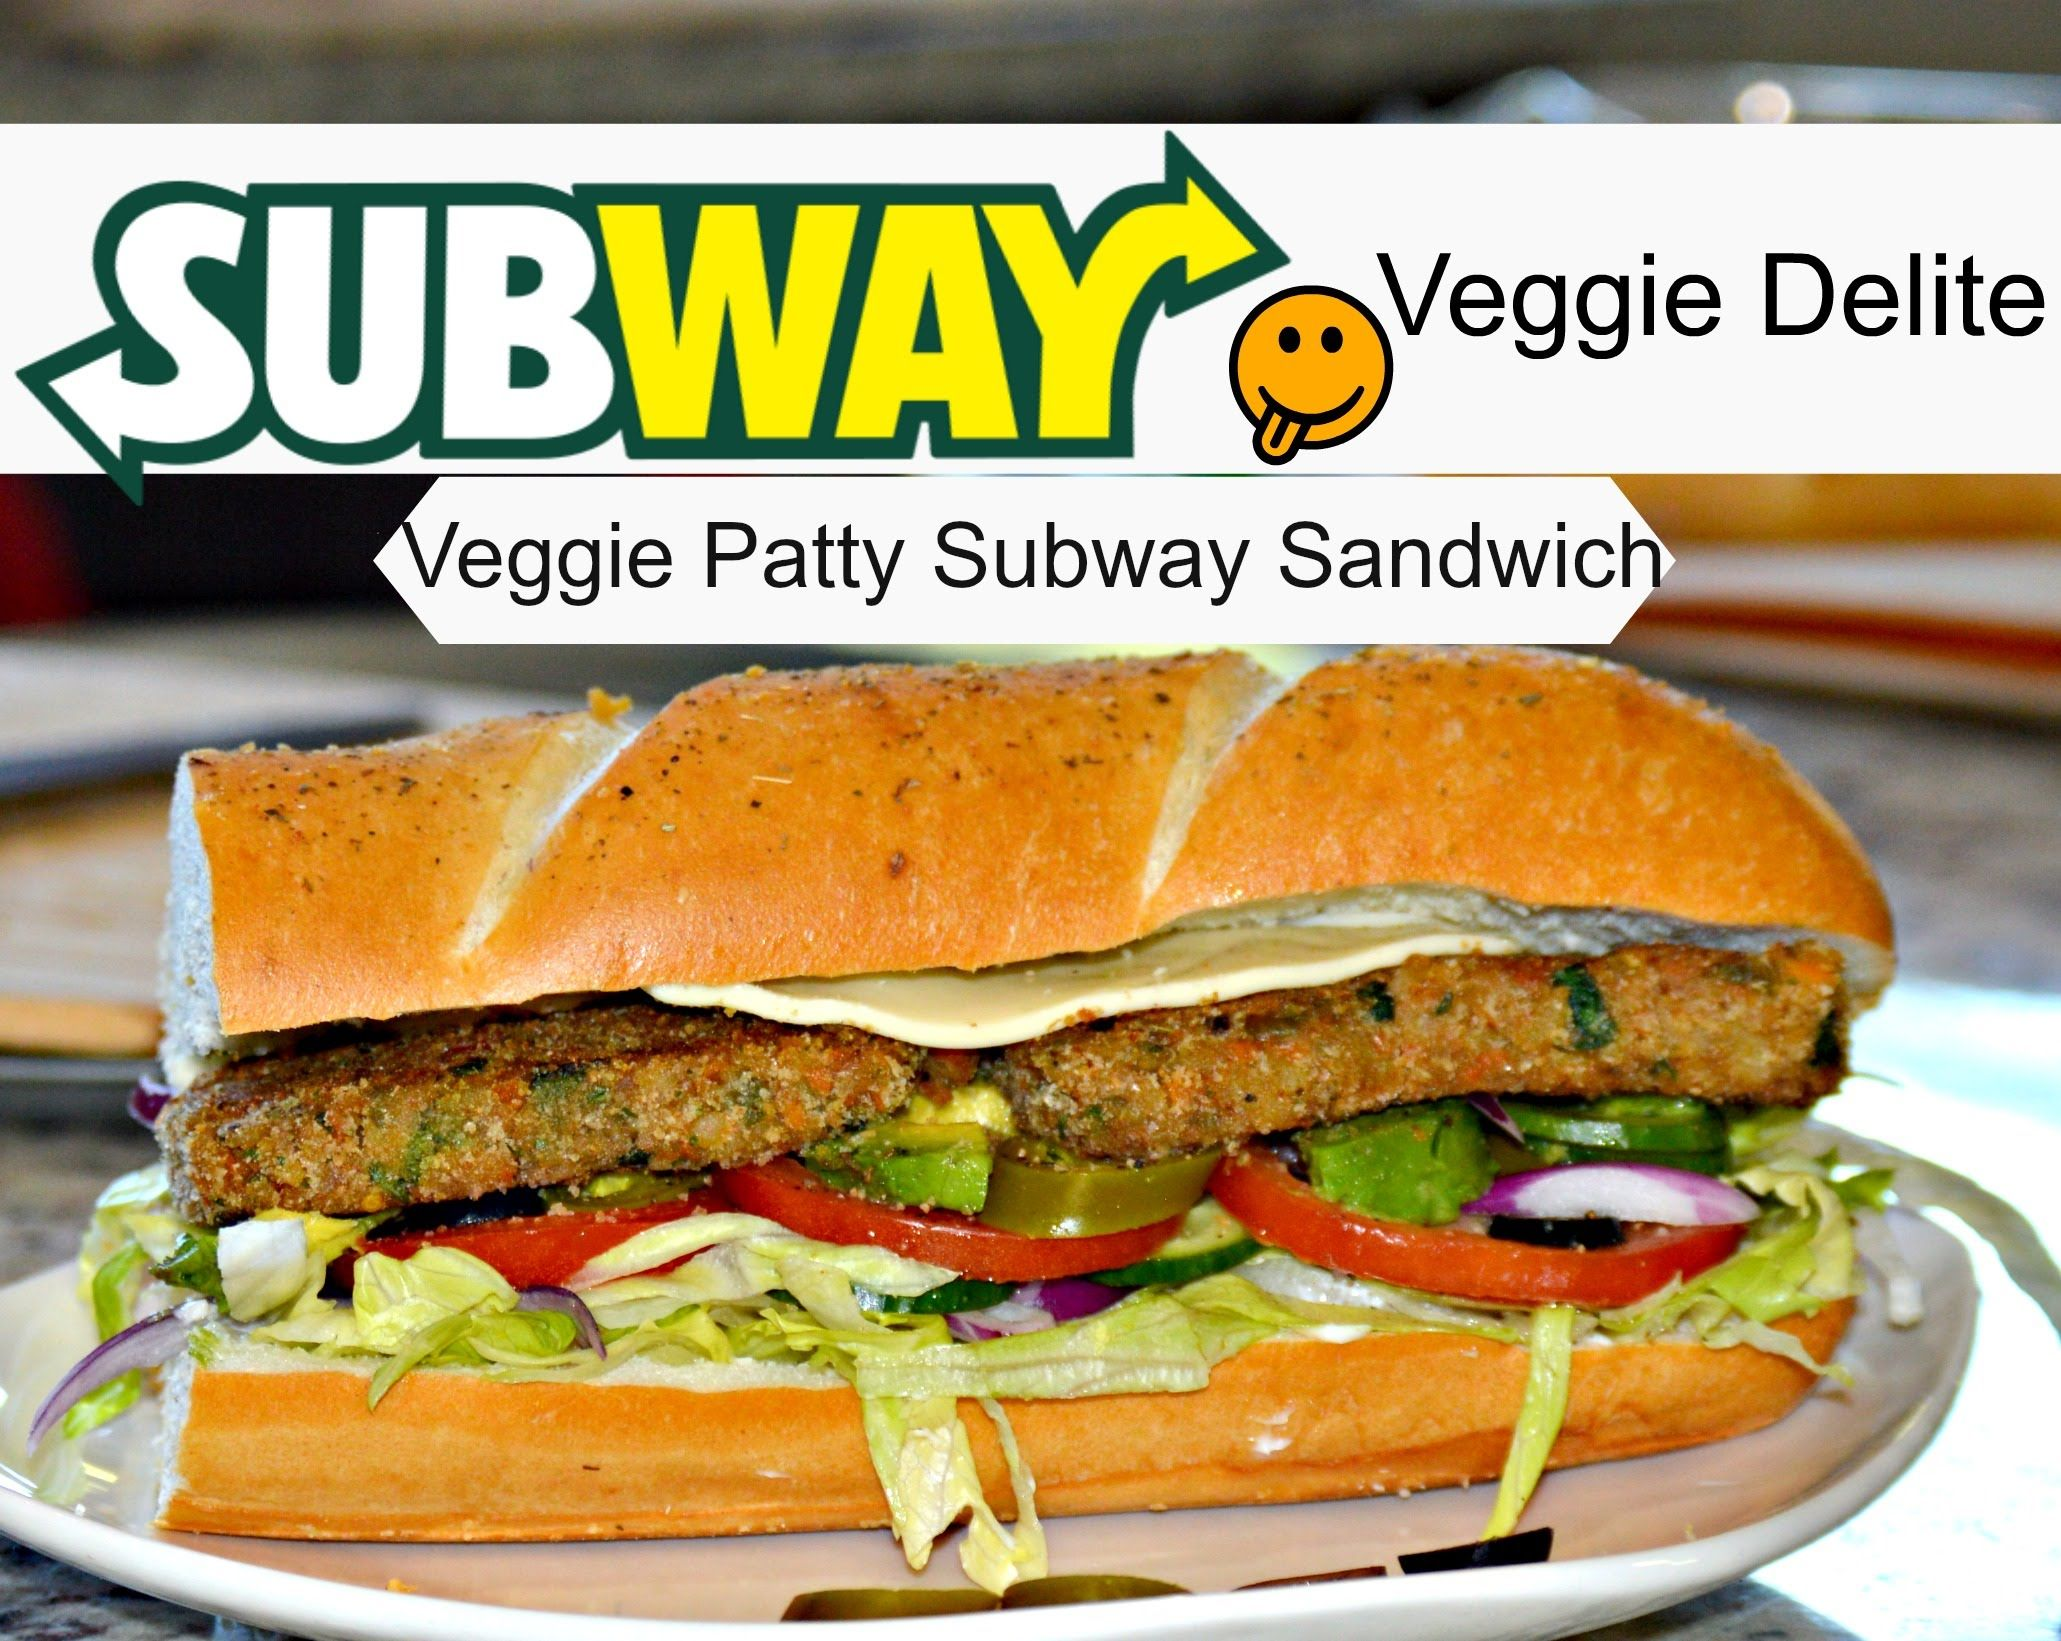 Subway veggie patty sandwich vegetarian junk food pinterest learn how to make very healthy subway sandwich at home and enjoy with veggie patty my veggie patty recipe is very easy and straightforward so forumfinder Gallery